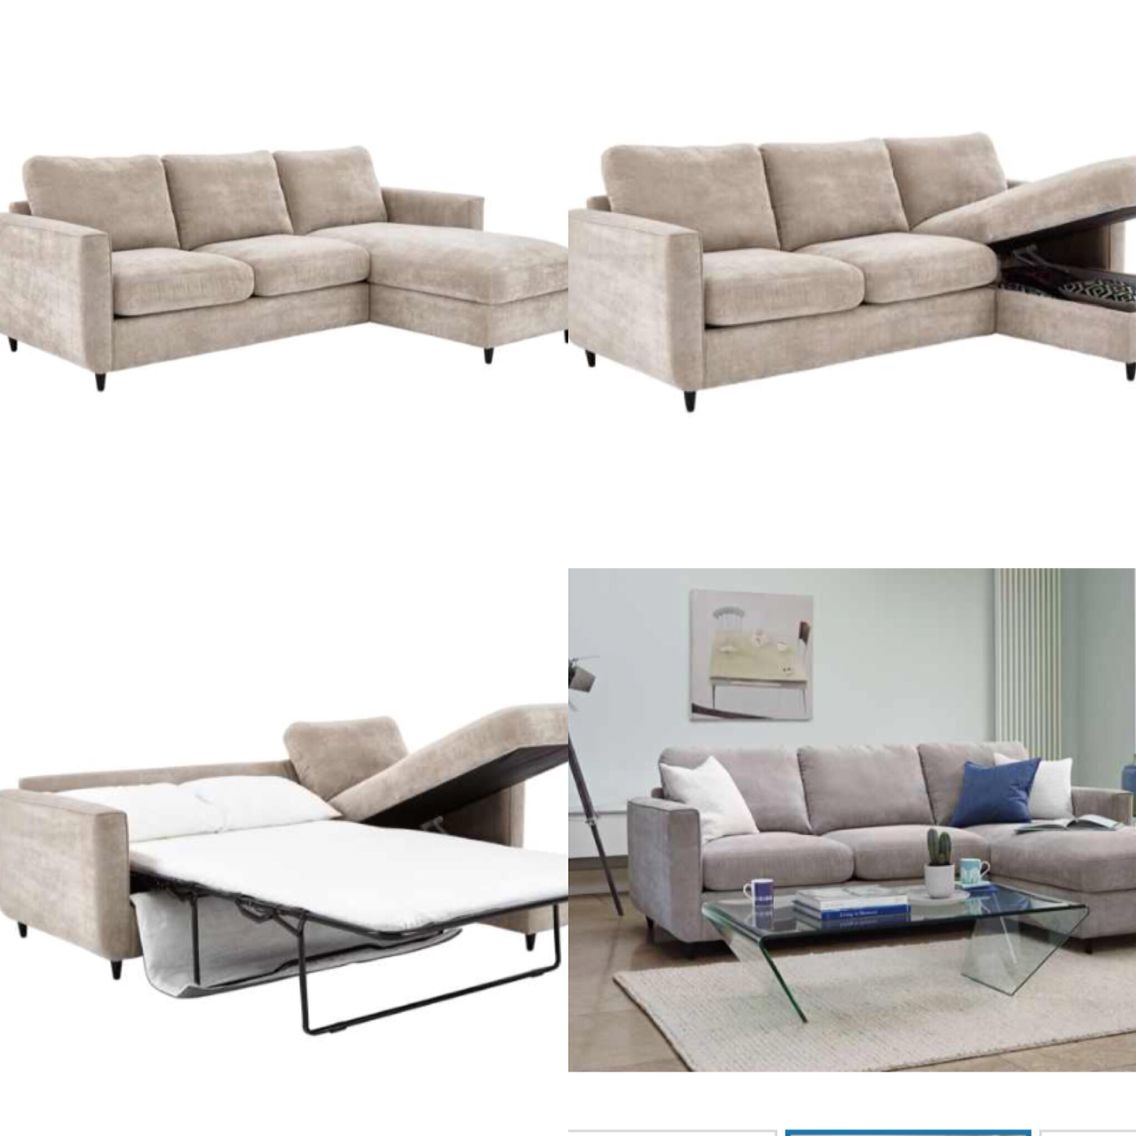 Esprit Chaise Sofabed With Storage Home Sweet Home Pinterest